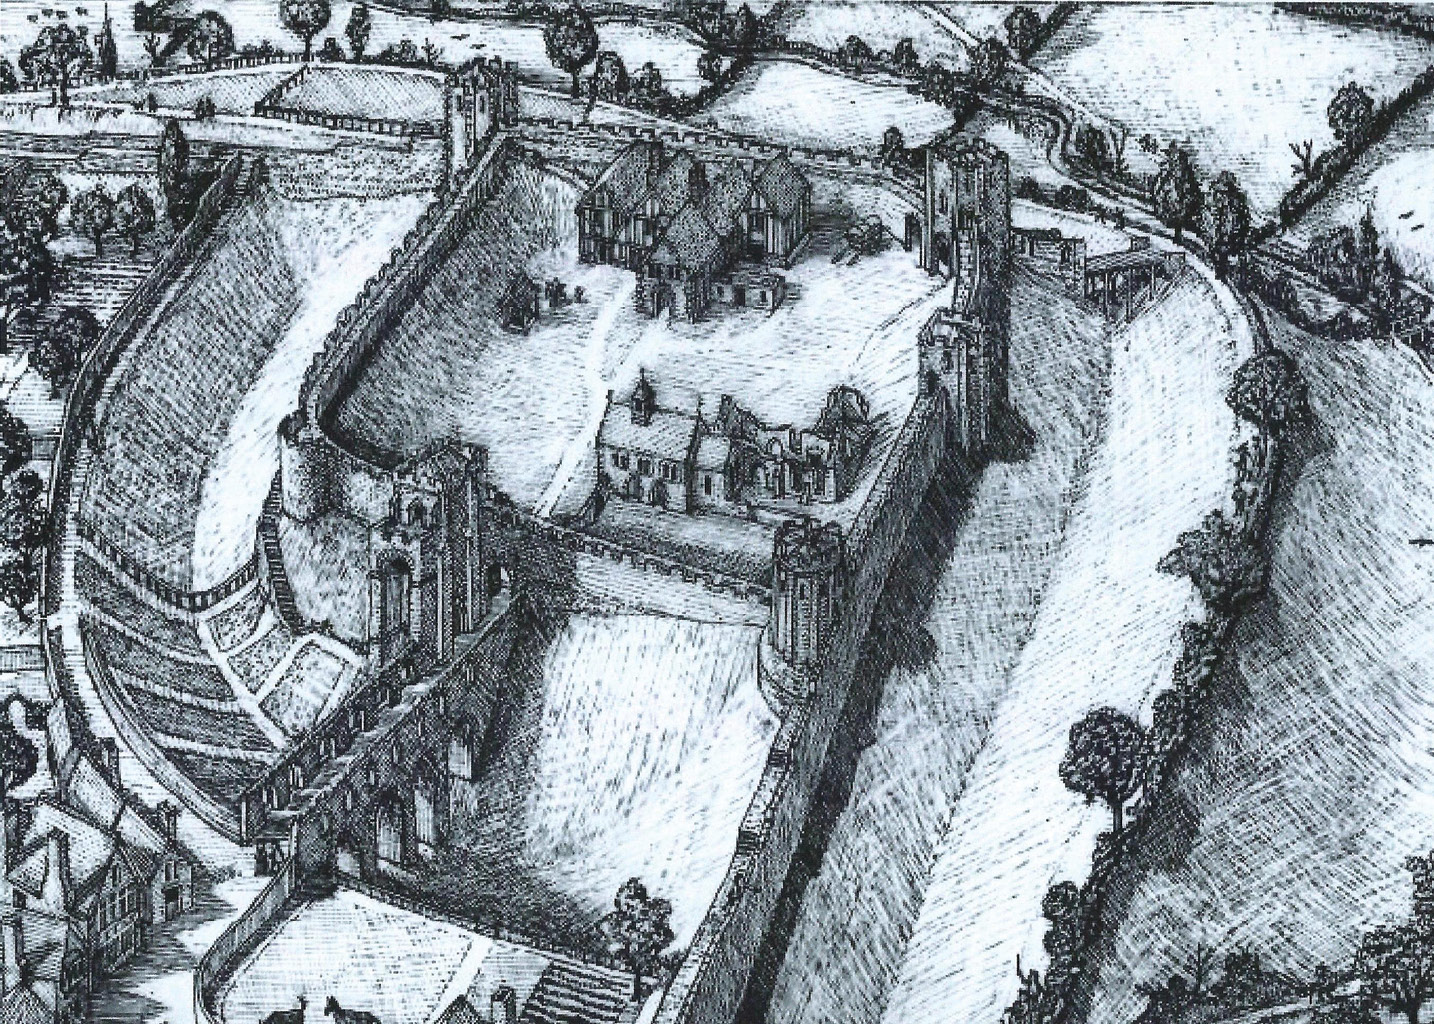 LEFT Further fortification came after the Norman Conquest, when William the Conqueror built a castle at Rougemont in 1068. Richard Parker's reconstruction depicts the castle in the later Middle Ages.